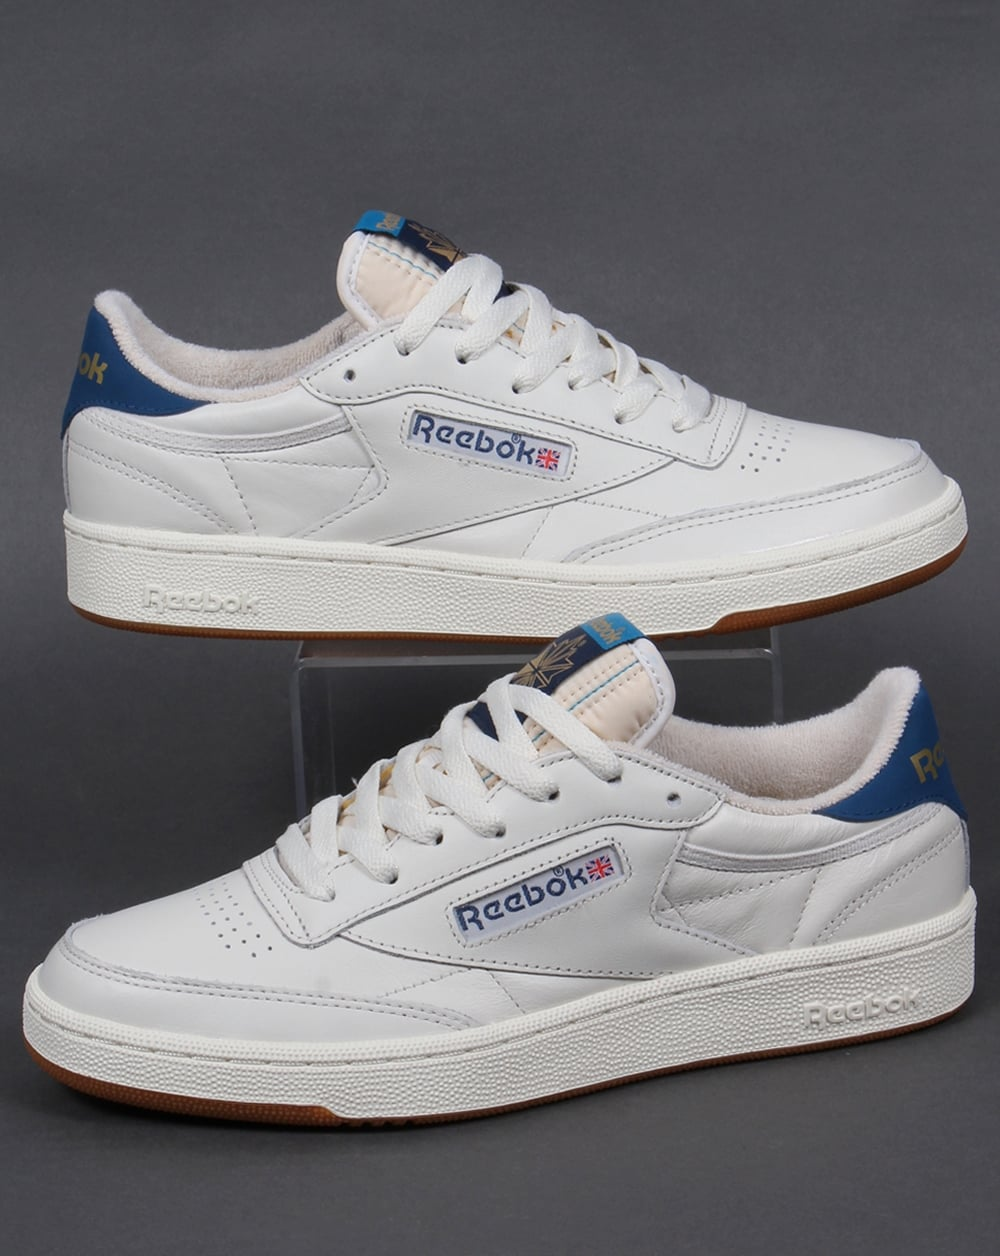 3ac3af86e75809 Reebok Reebok Club 85 Retro Trainers Chalk White Blue